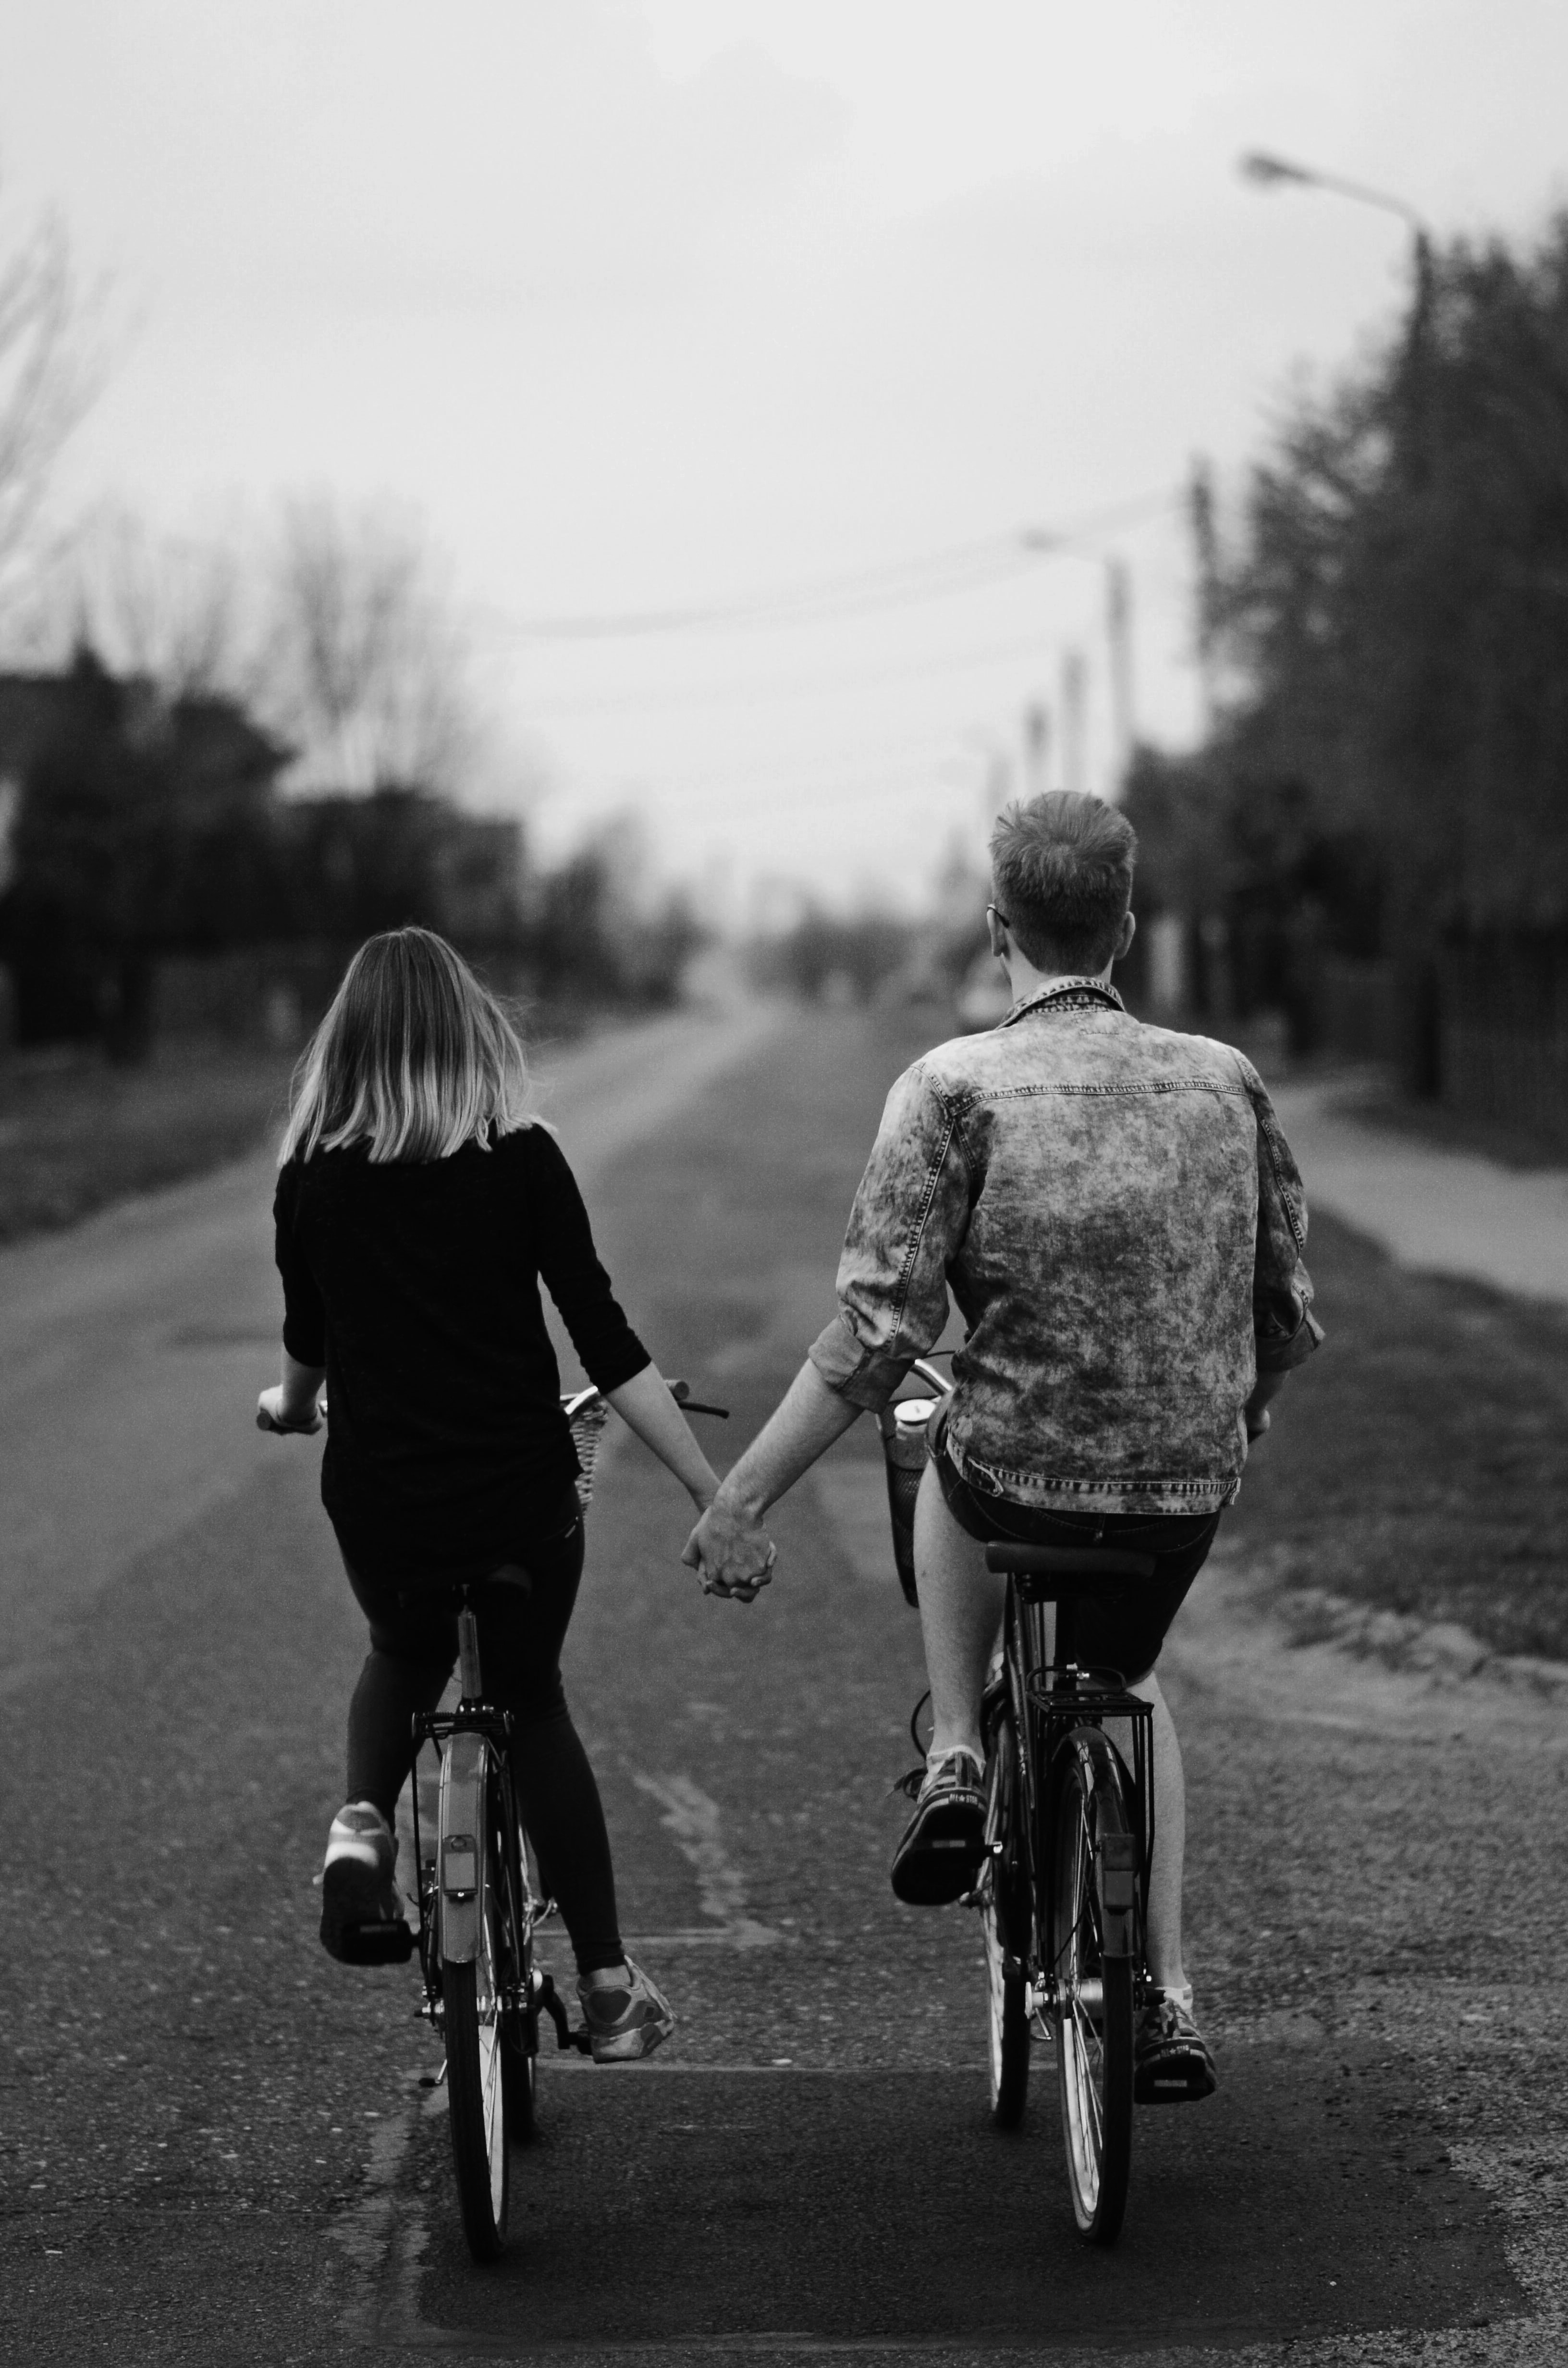 grayscale photo of couple riding bicycles on raod